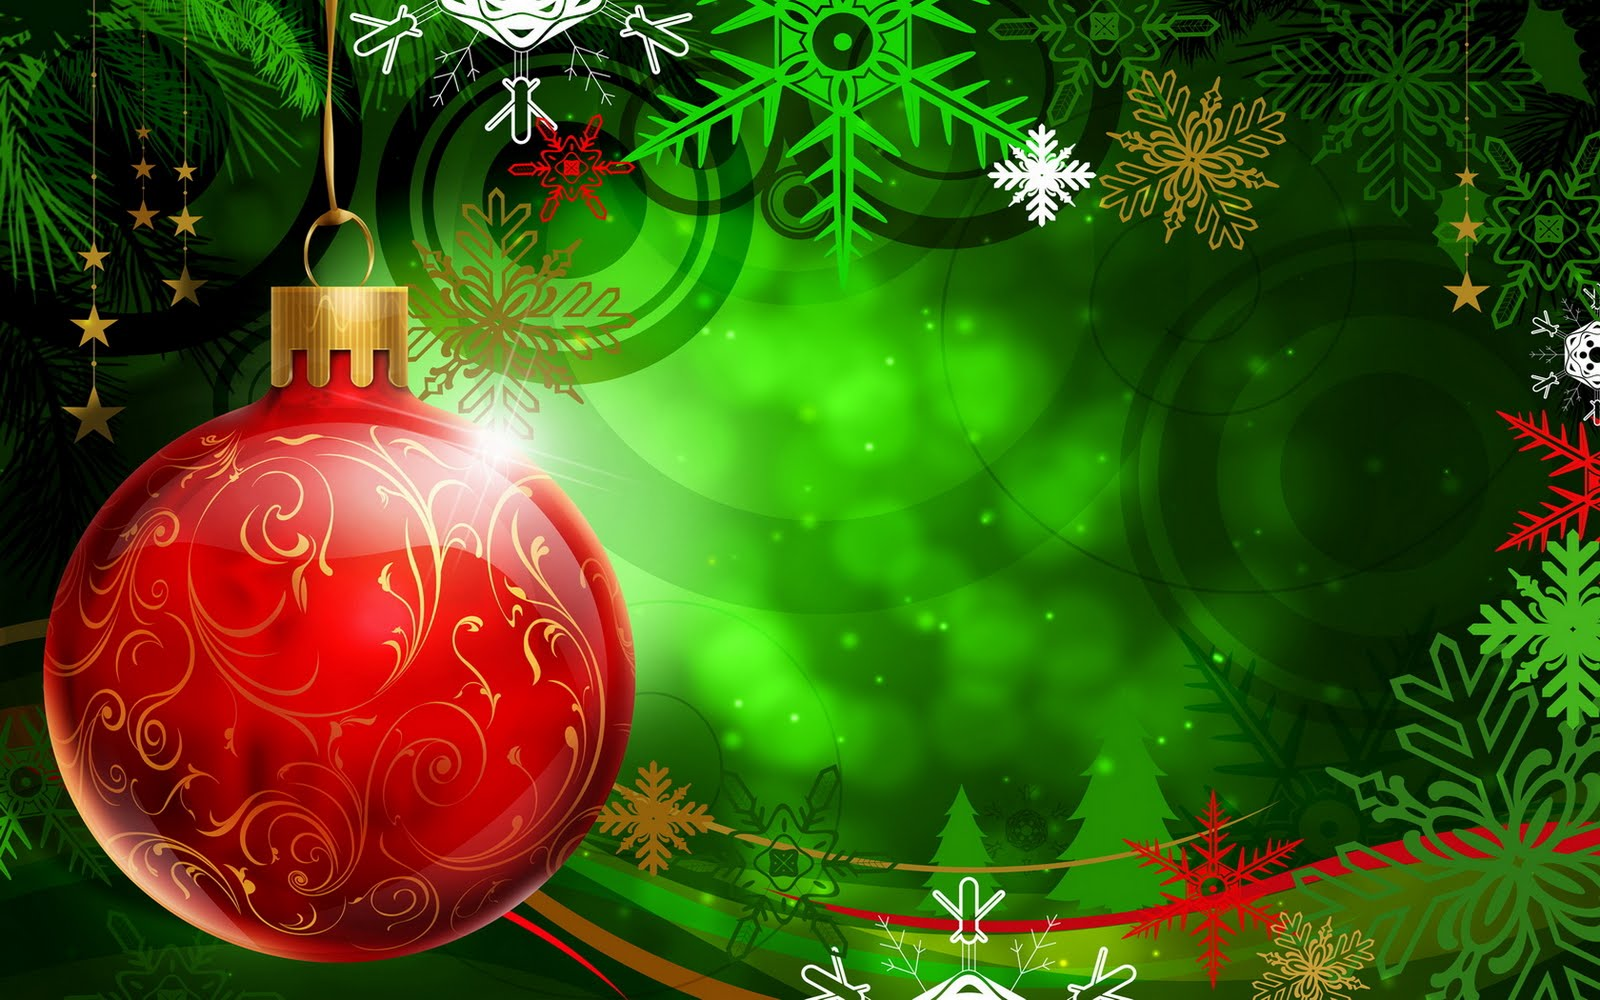 wallpapers online christmas wallpapers backgrounds screen savers 1600x1000